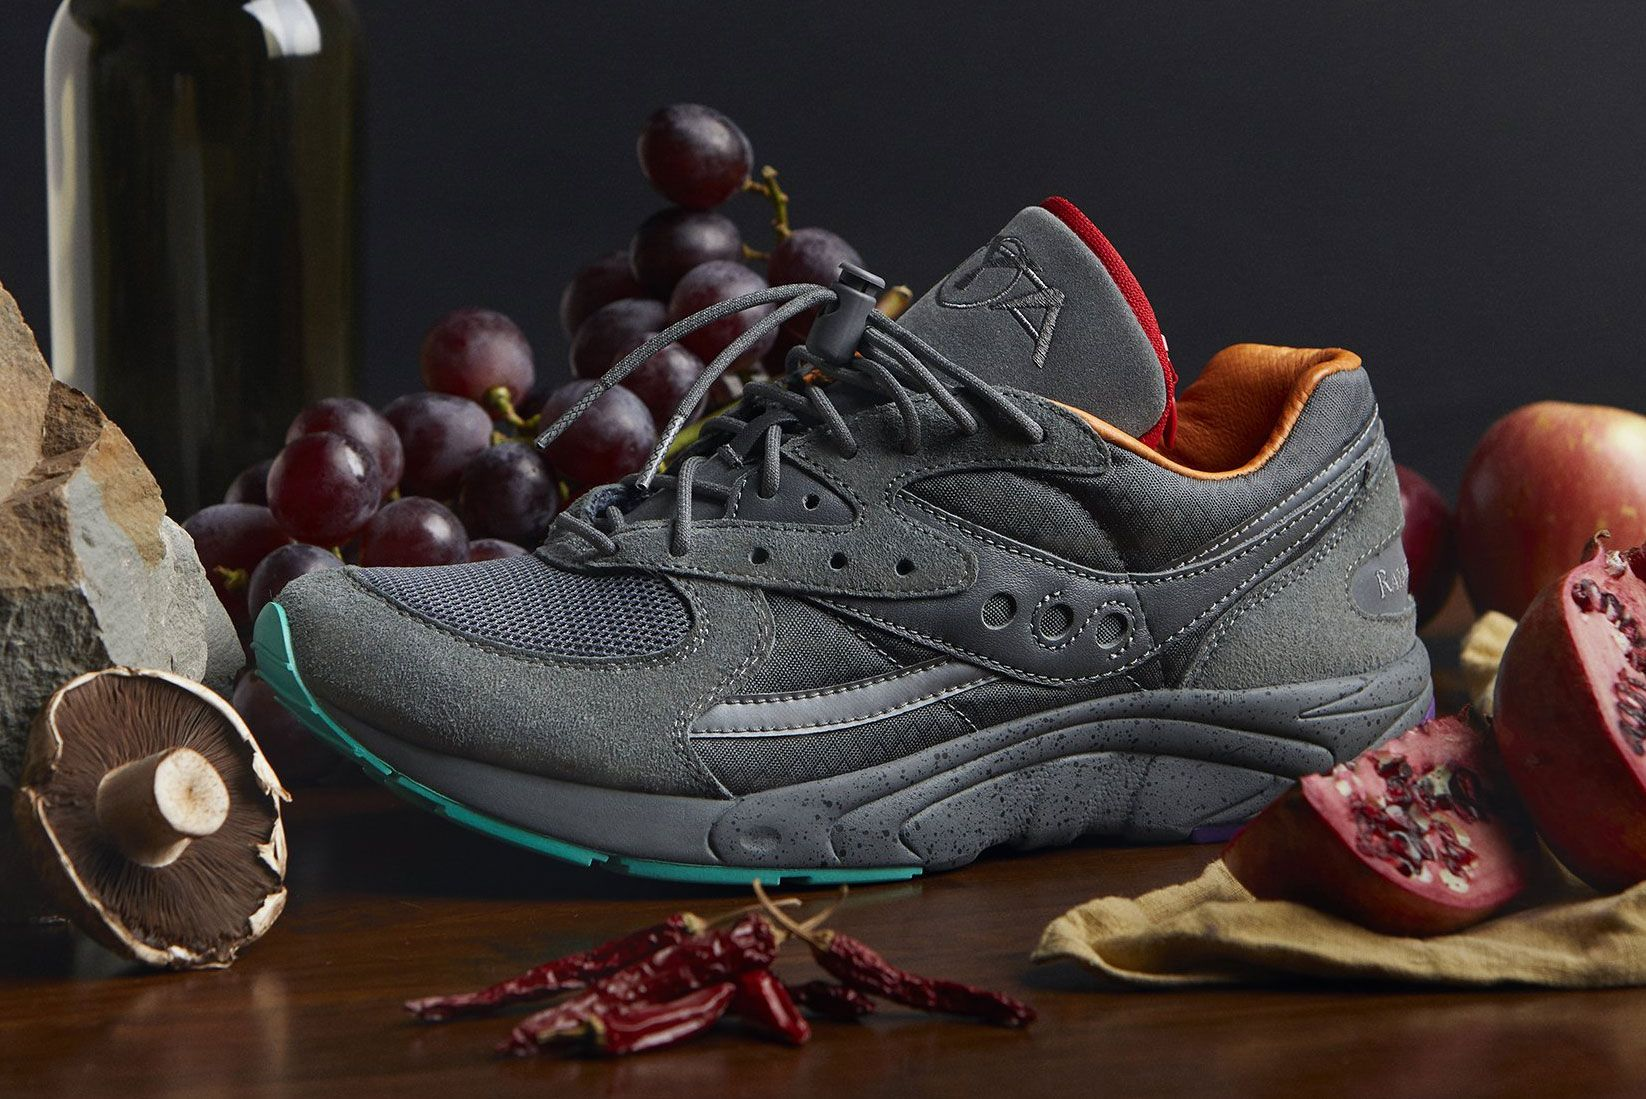 Raised By Wolves x Saucony Aya